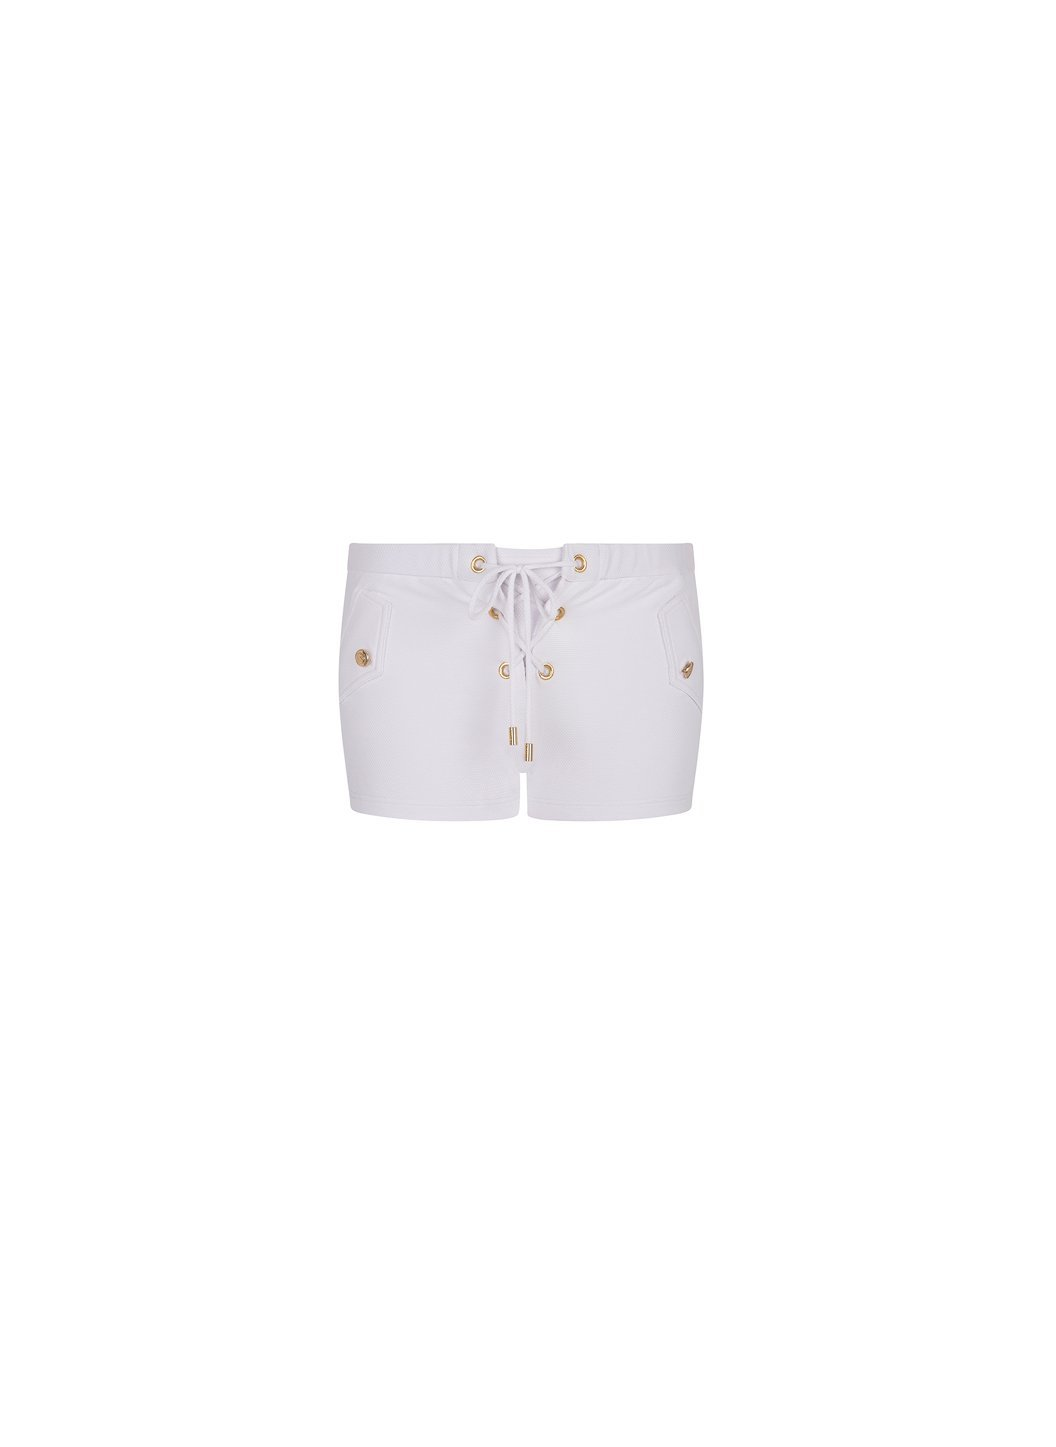 Sophia White Pique Lace-Up Eyelet Shorts